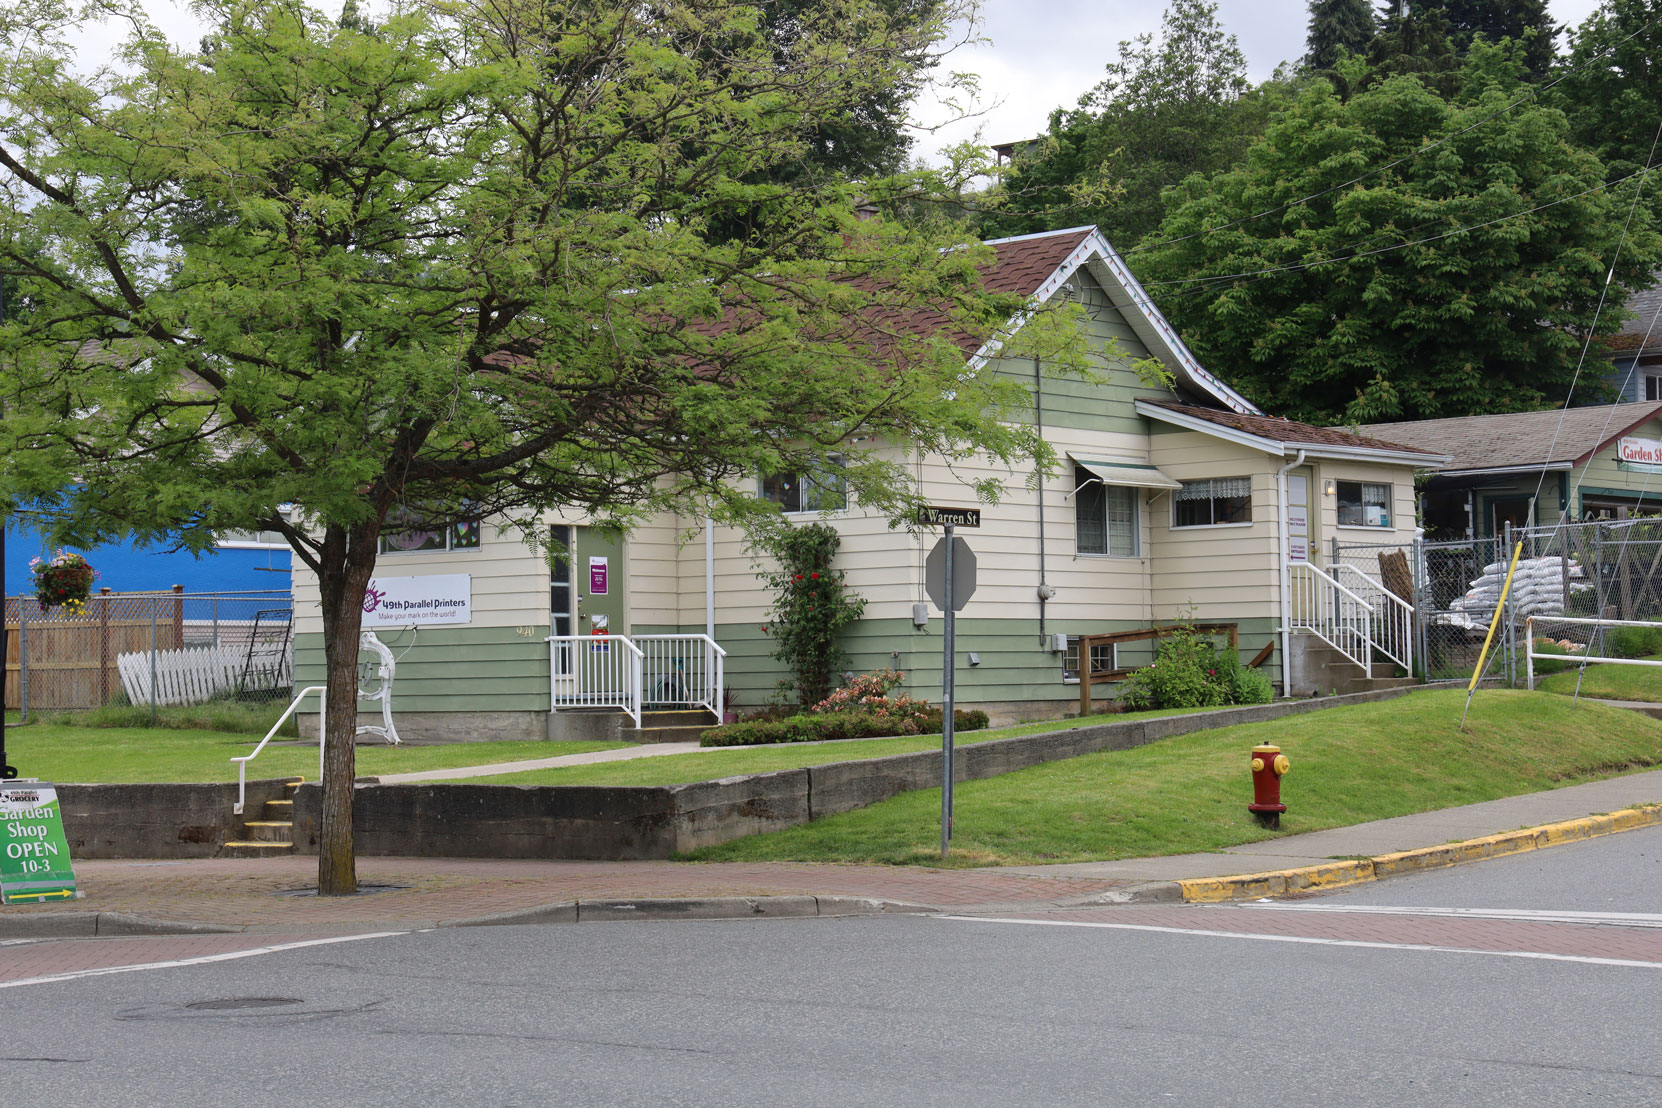 940 1st Avenue, Ladysmith, B.C. Built in 1950 (photo: Mark Anderson)